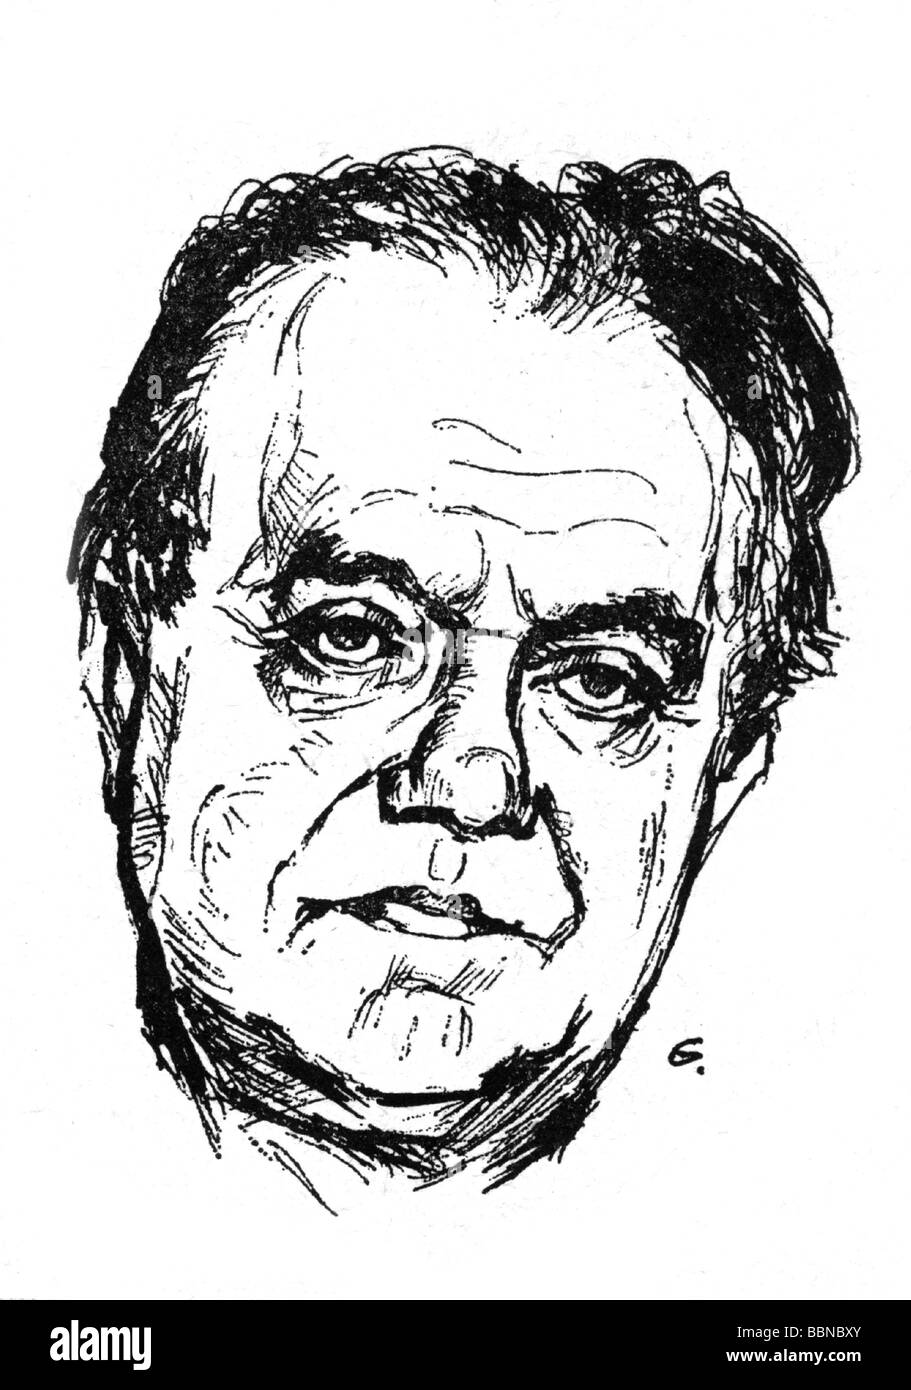 Gerster, Ottmar, 29.6.1897 - 1969, German musician (composer), portrait, drawing by Gäbel, Additional-Rights - Stock Image